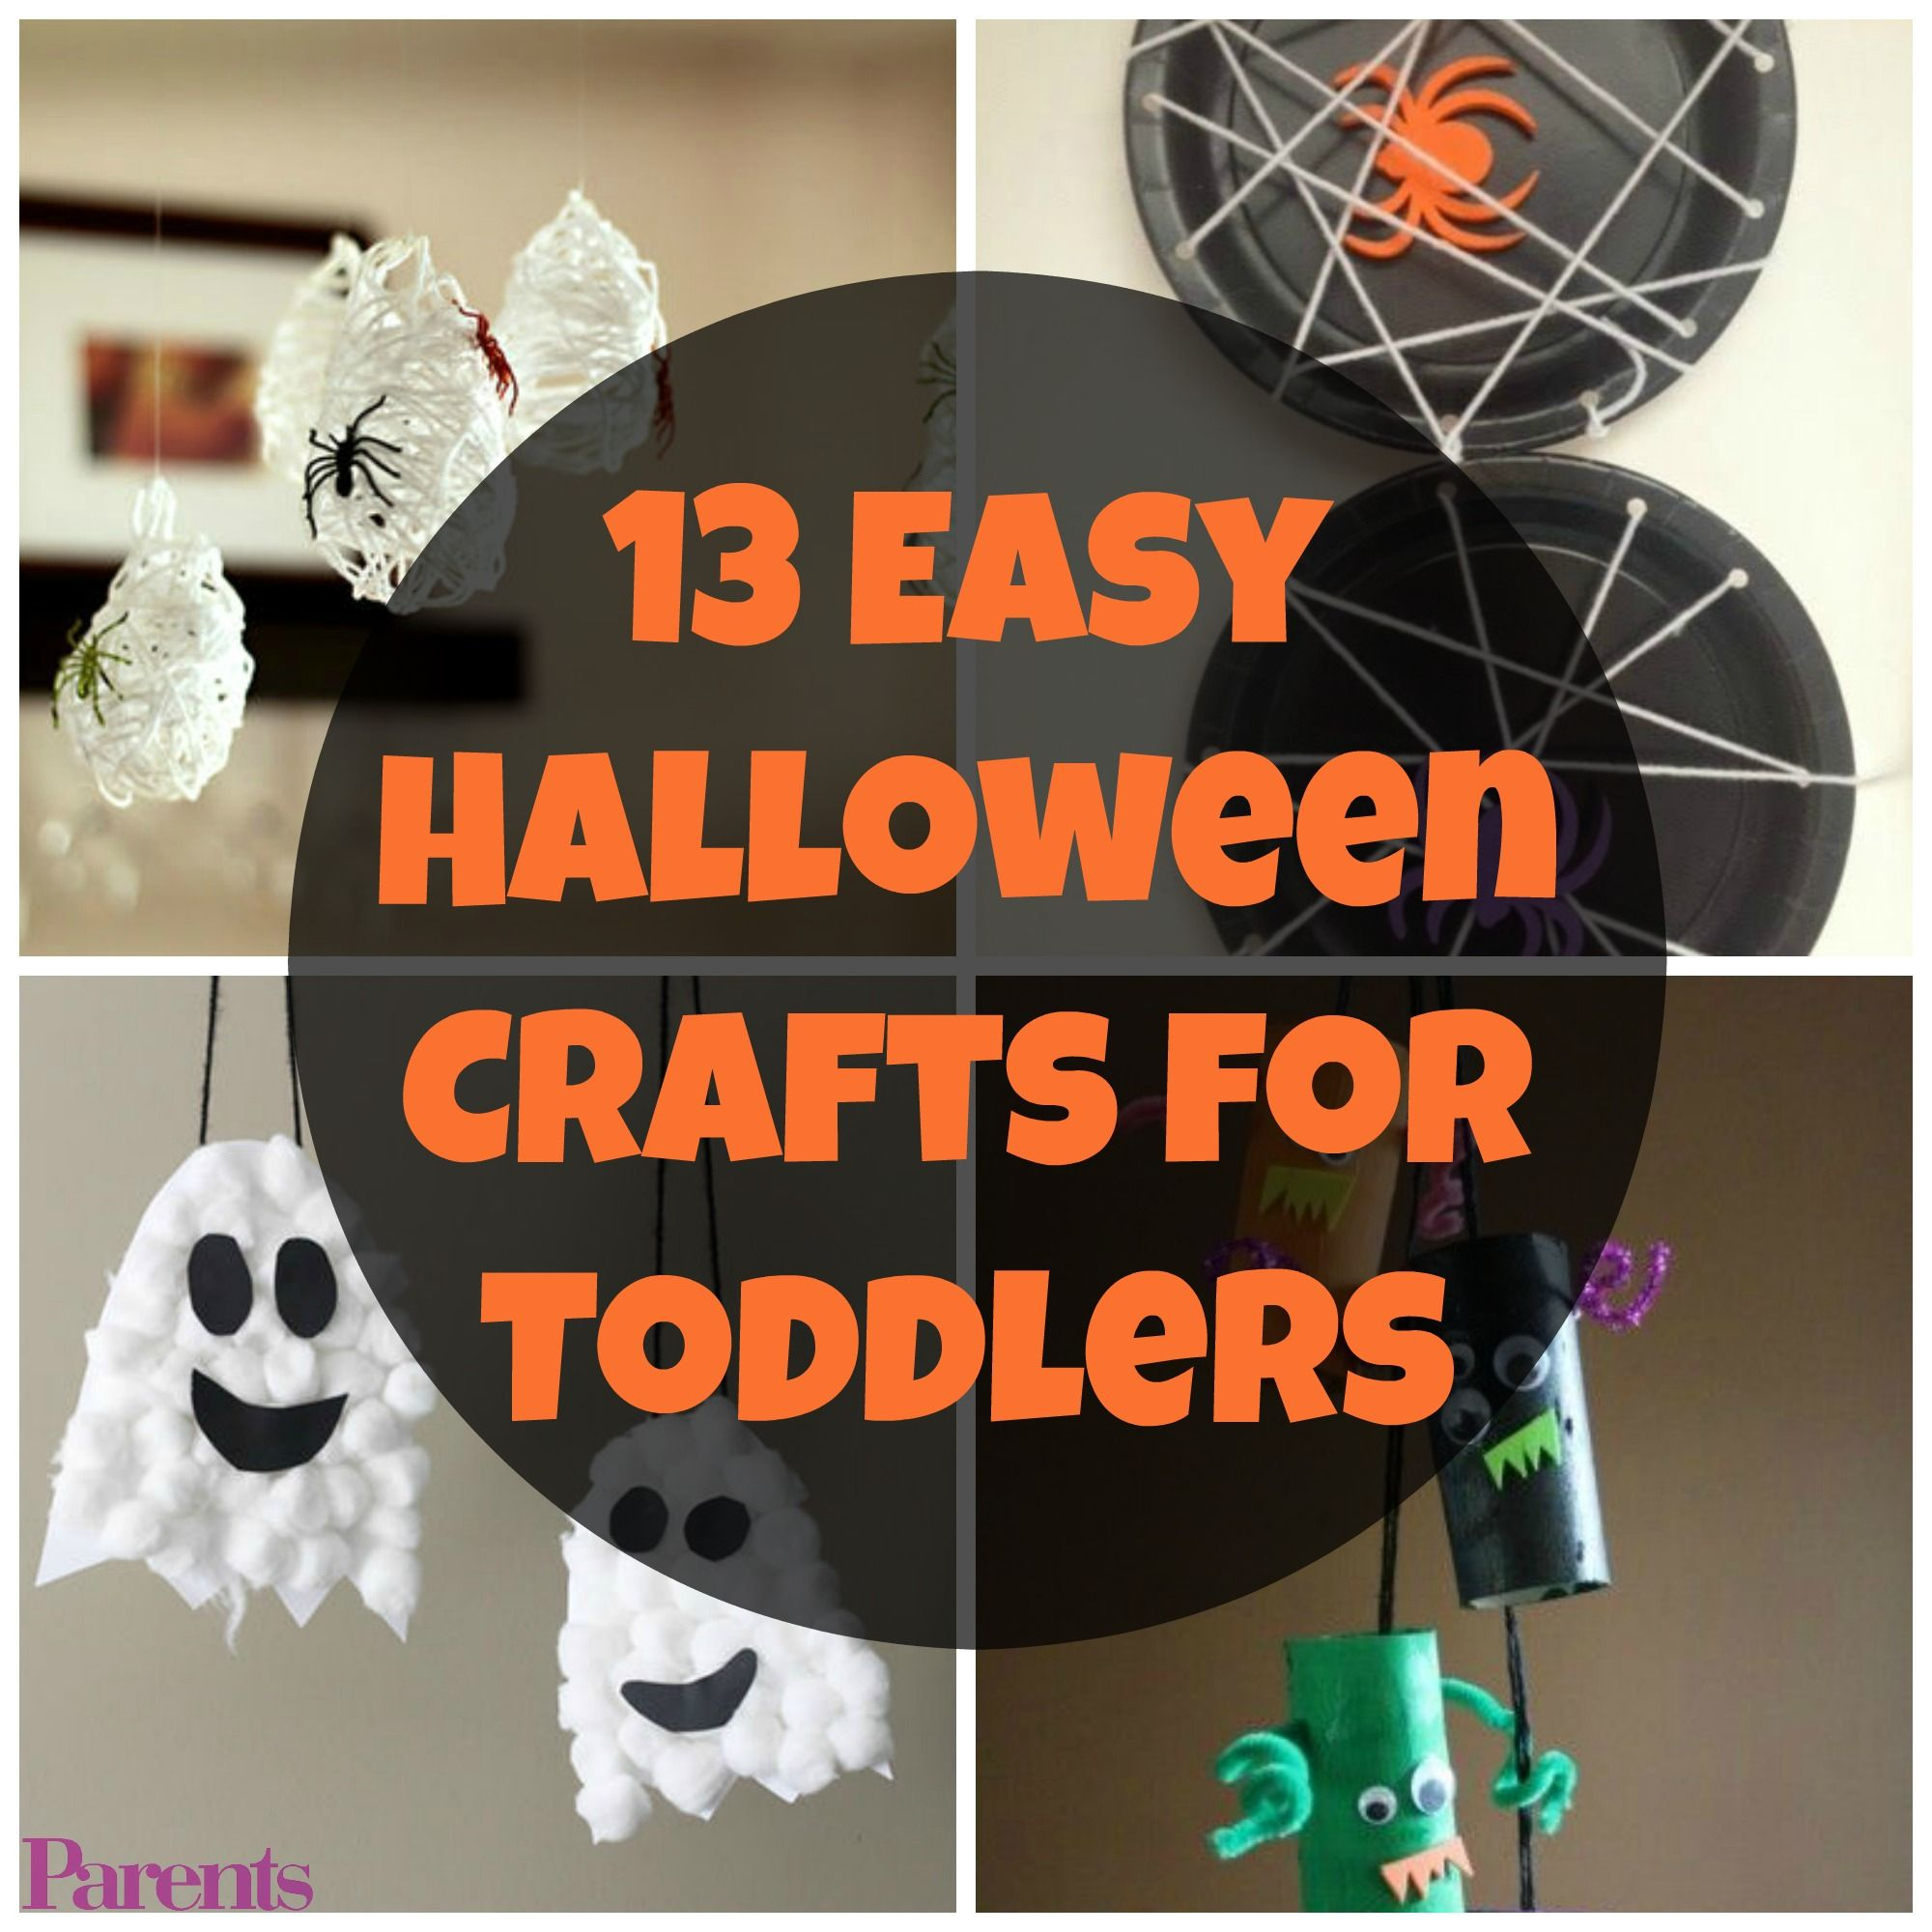 At Home Halloween Crafts For Toddlers.Pin On Kid Friendly Halloween Crafts